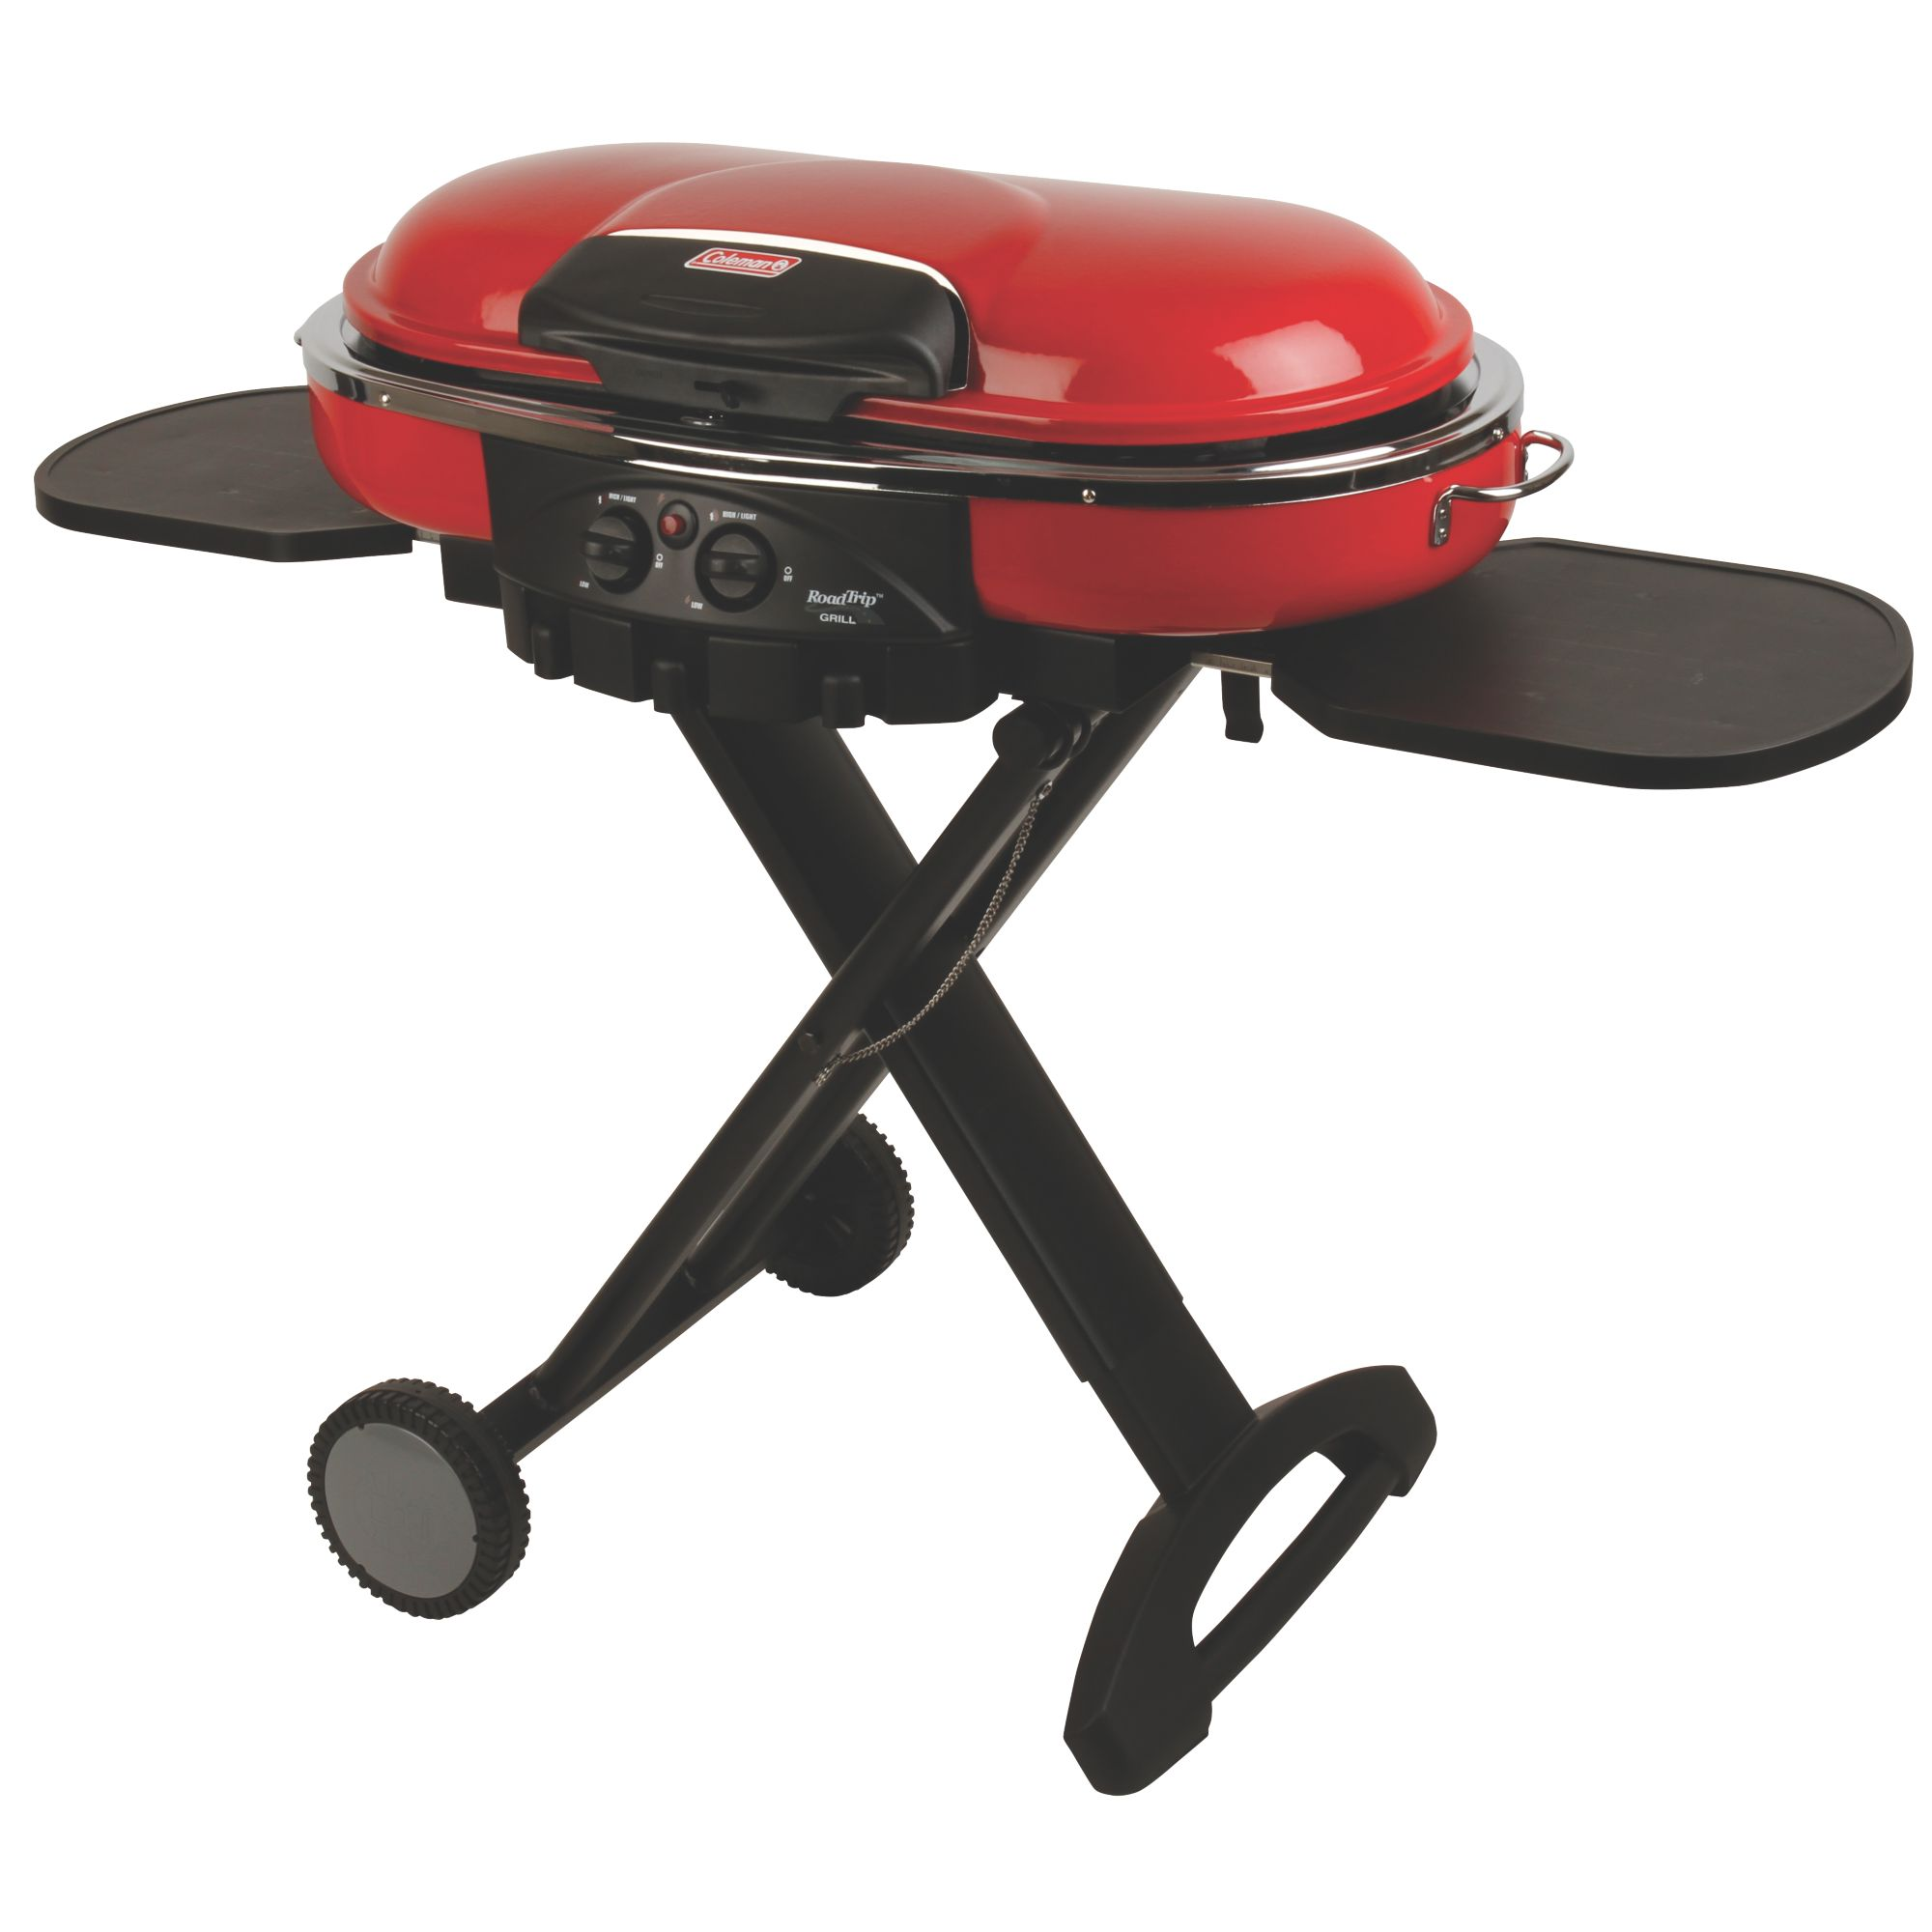 Coleman Roadtrip LXE Propane Barbecue – Portable, Push-Button Ignition, PerfectFlow Even Cooking, Folds for Transporting and Storage